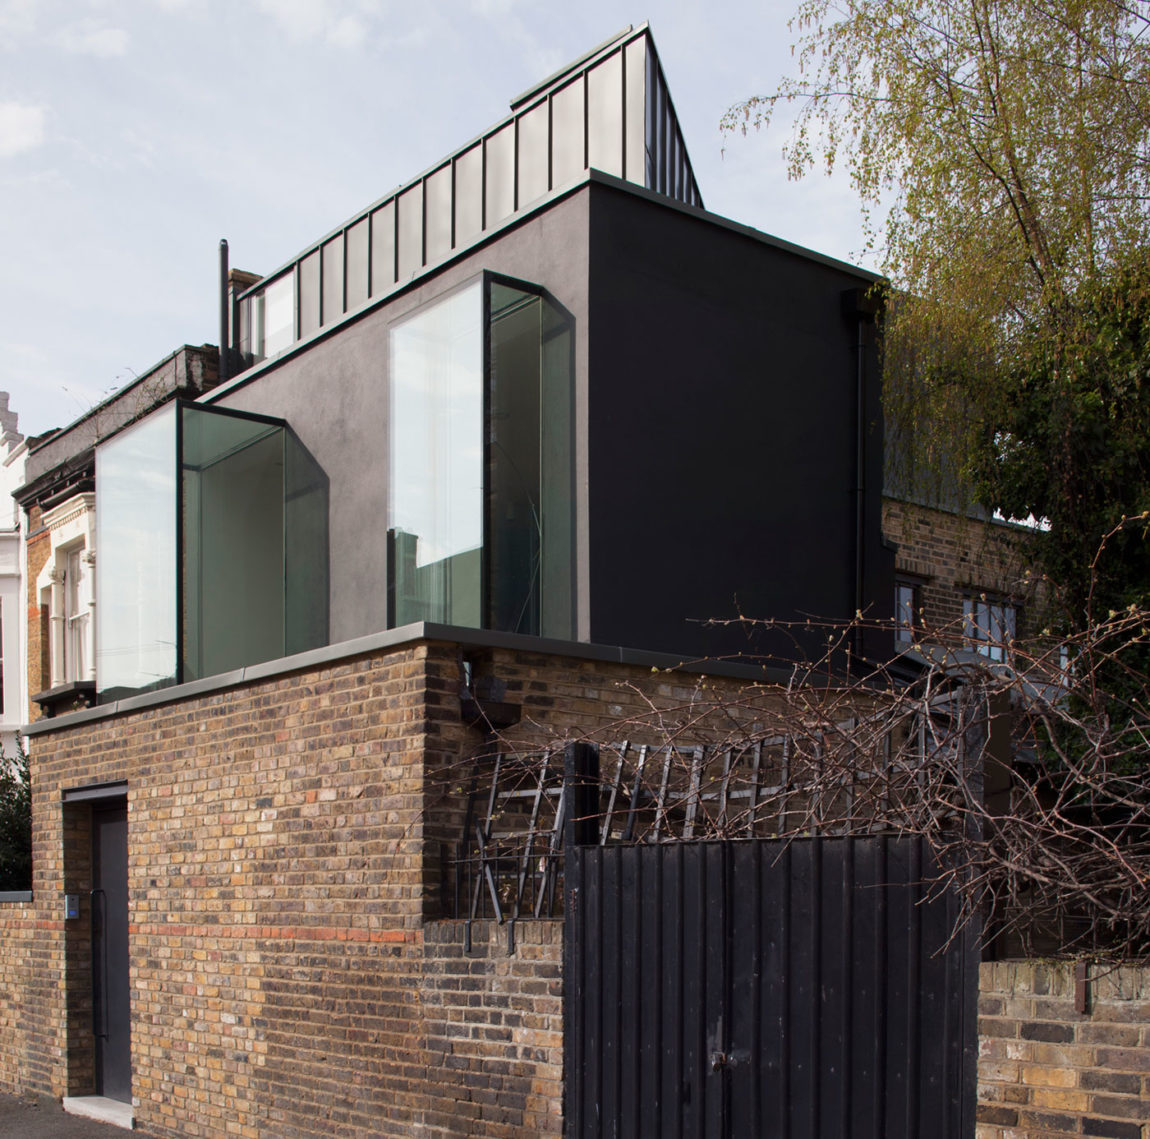 Sewdley St by Giles Pike Architects (3)